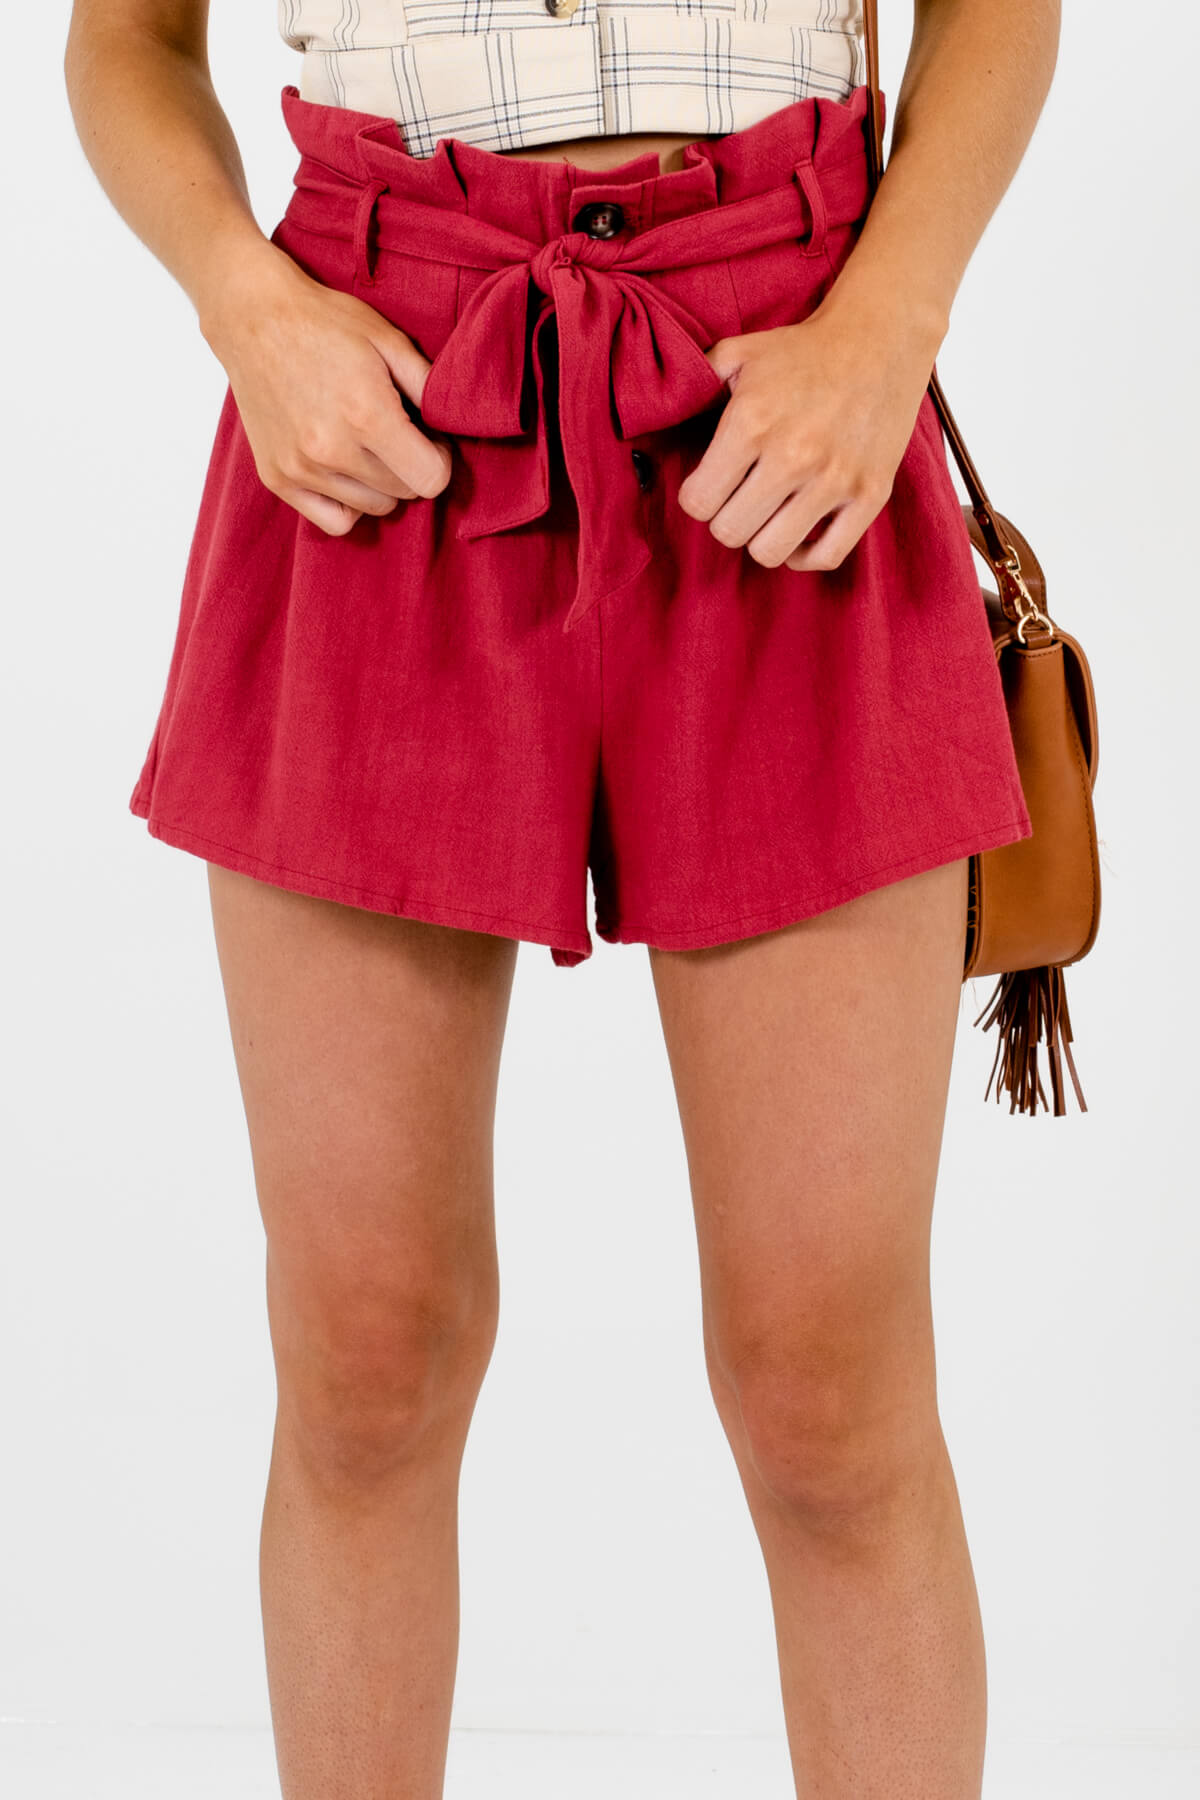 Dark Pink High-Quality Boutique Shorts for Women